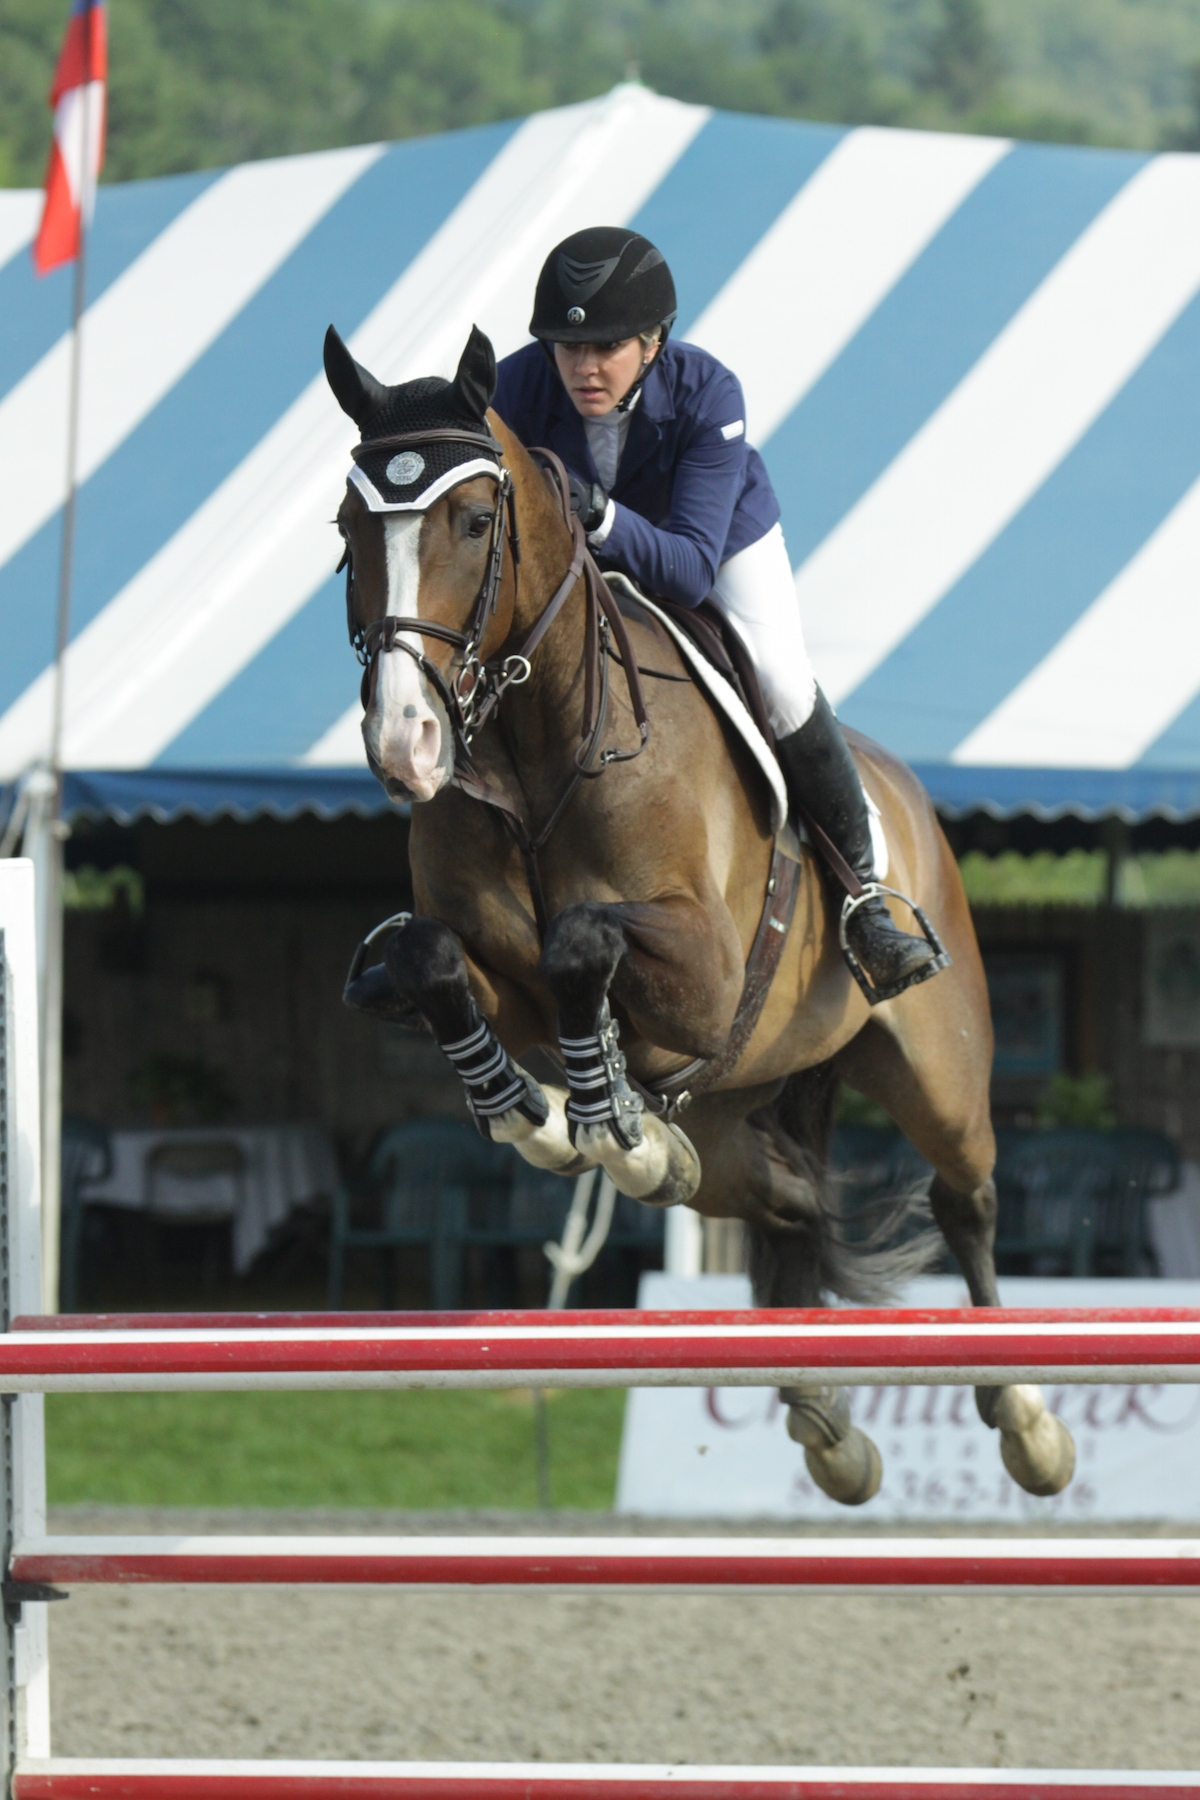 Rebecca Meitin and Zulu won the $2,500 Marshall & Sterling Adult Amateur Jumper Classic on Sunday, July 19, at the Vermont Summer Festival in East Dorset, VT.<br><b>Photo by <a href='http://www.photoreflect.com/home/default.aspx' target='_blank'>David Mullinix Photography</a></b>